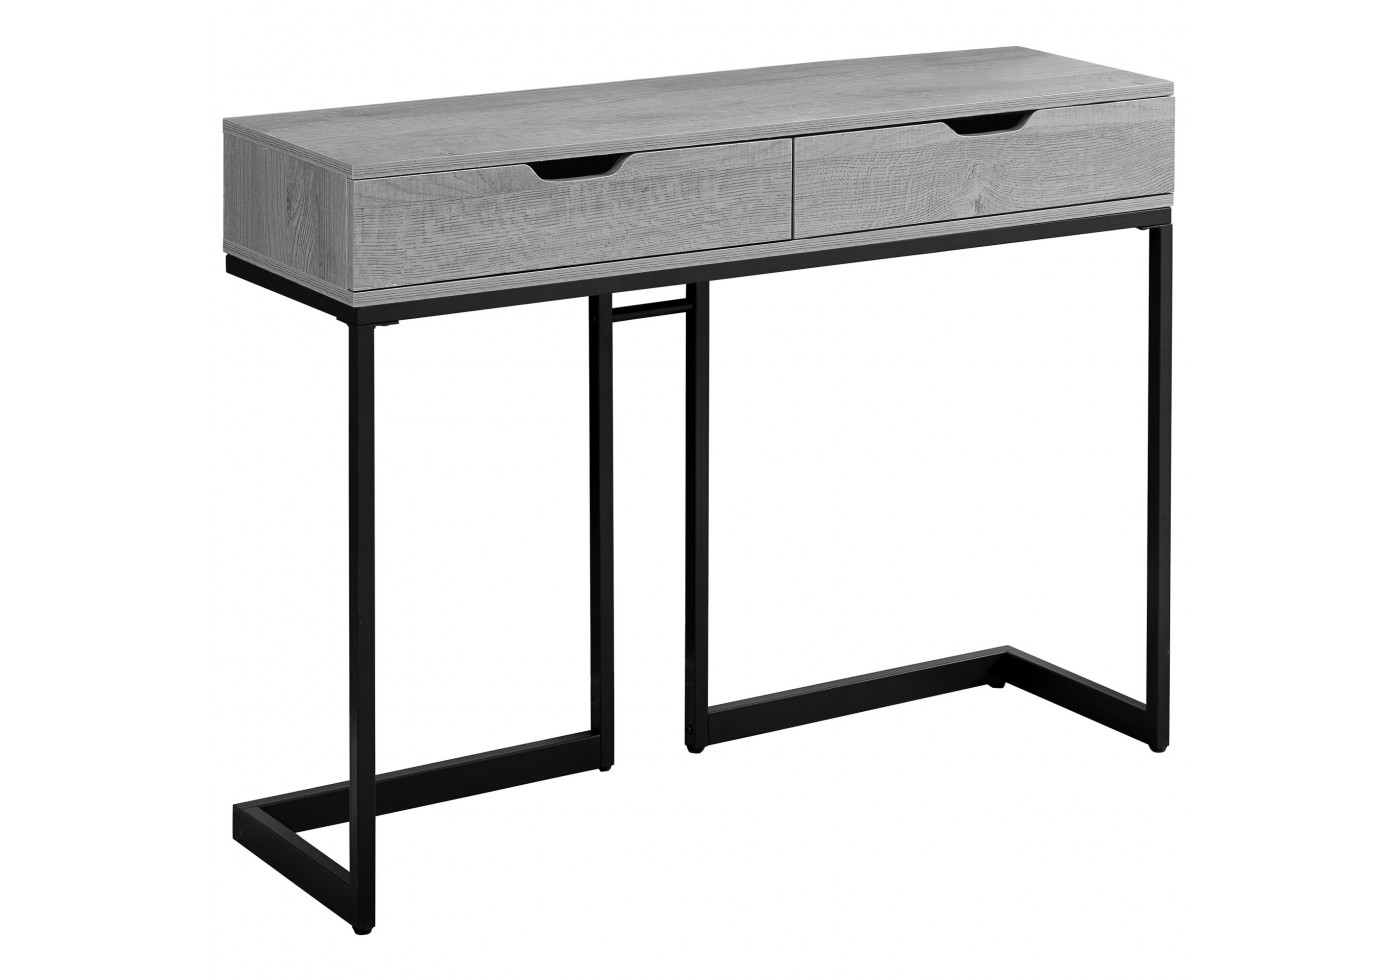 accent table grey black metal hall console silver lamps nautical pendant lights small coffee with drawers laminate threshold hobby lobby antique dining room pier one furniture